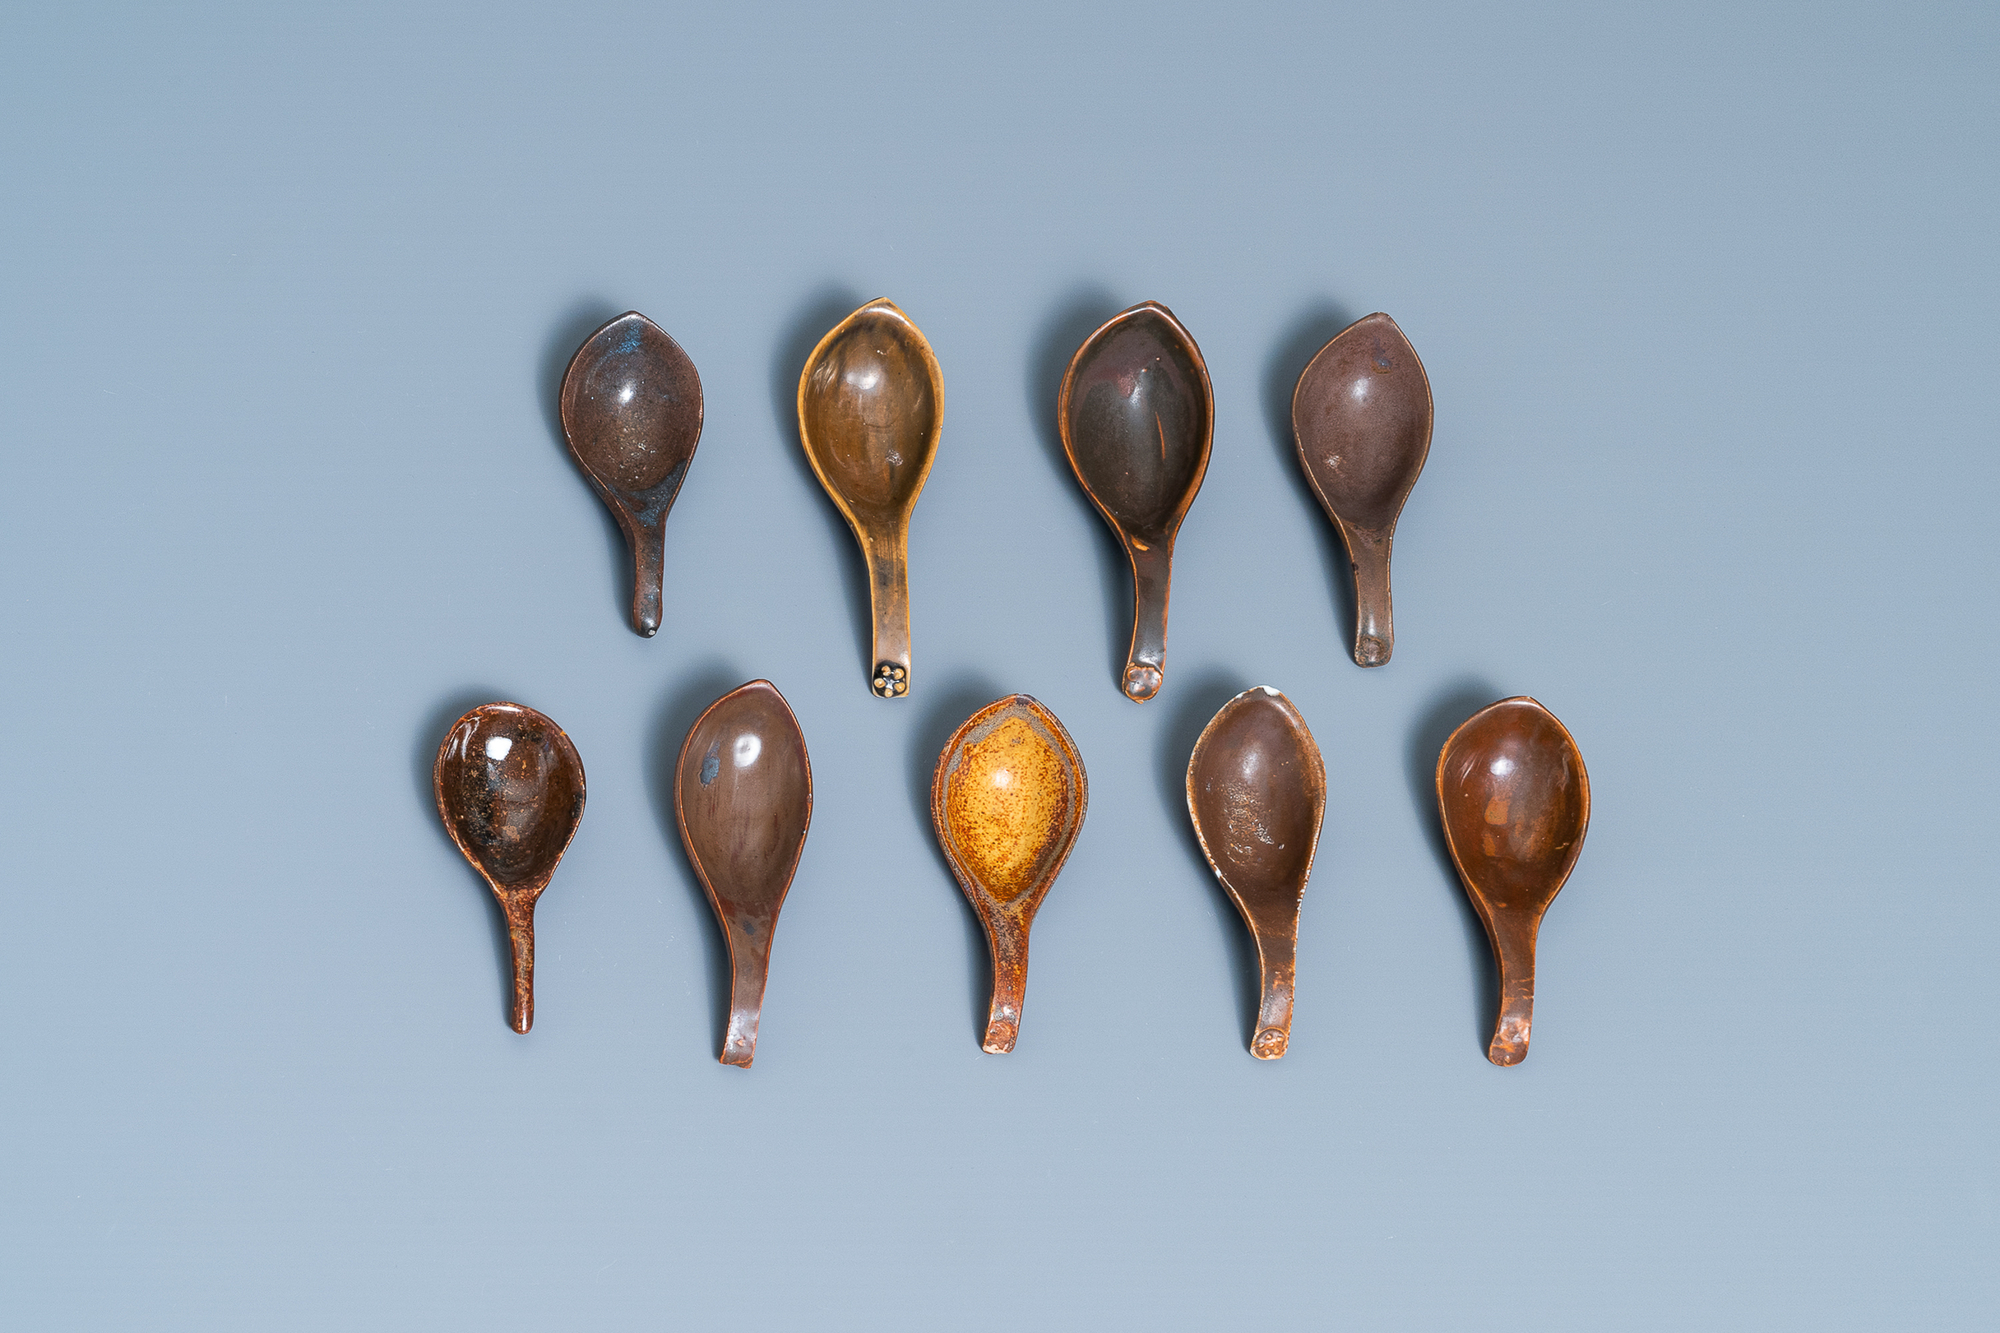 22 Chinese brown- and white-glazed spoons, 17/18th C. - Image 5 of 19